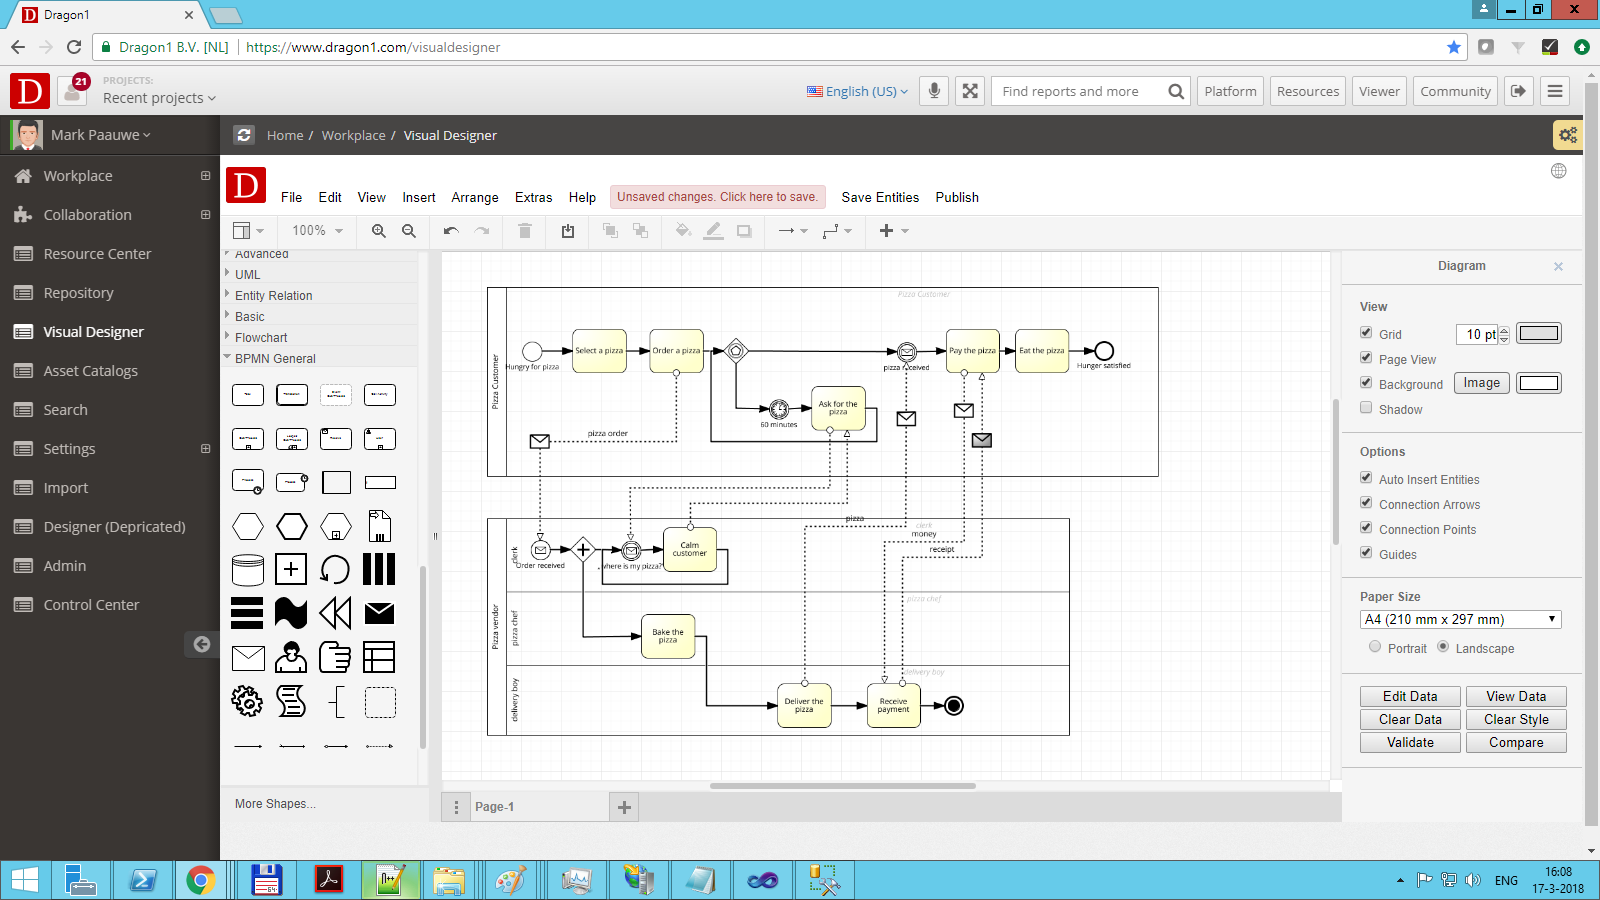 Create a bpmn diagram dragon1 bpmn diagram relationships ccuart Gallery